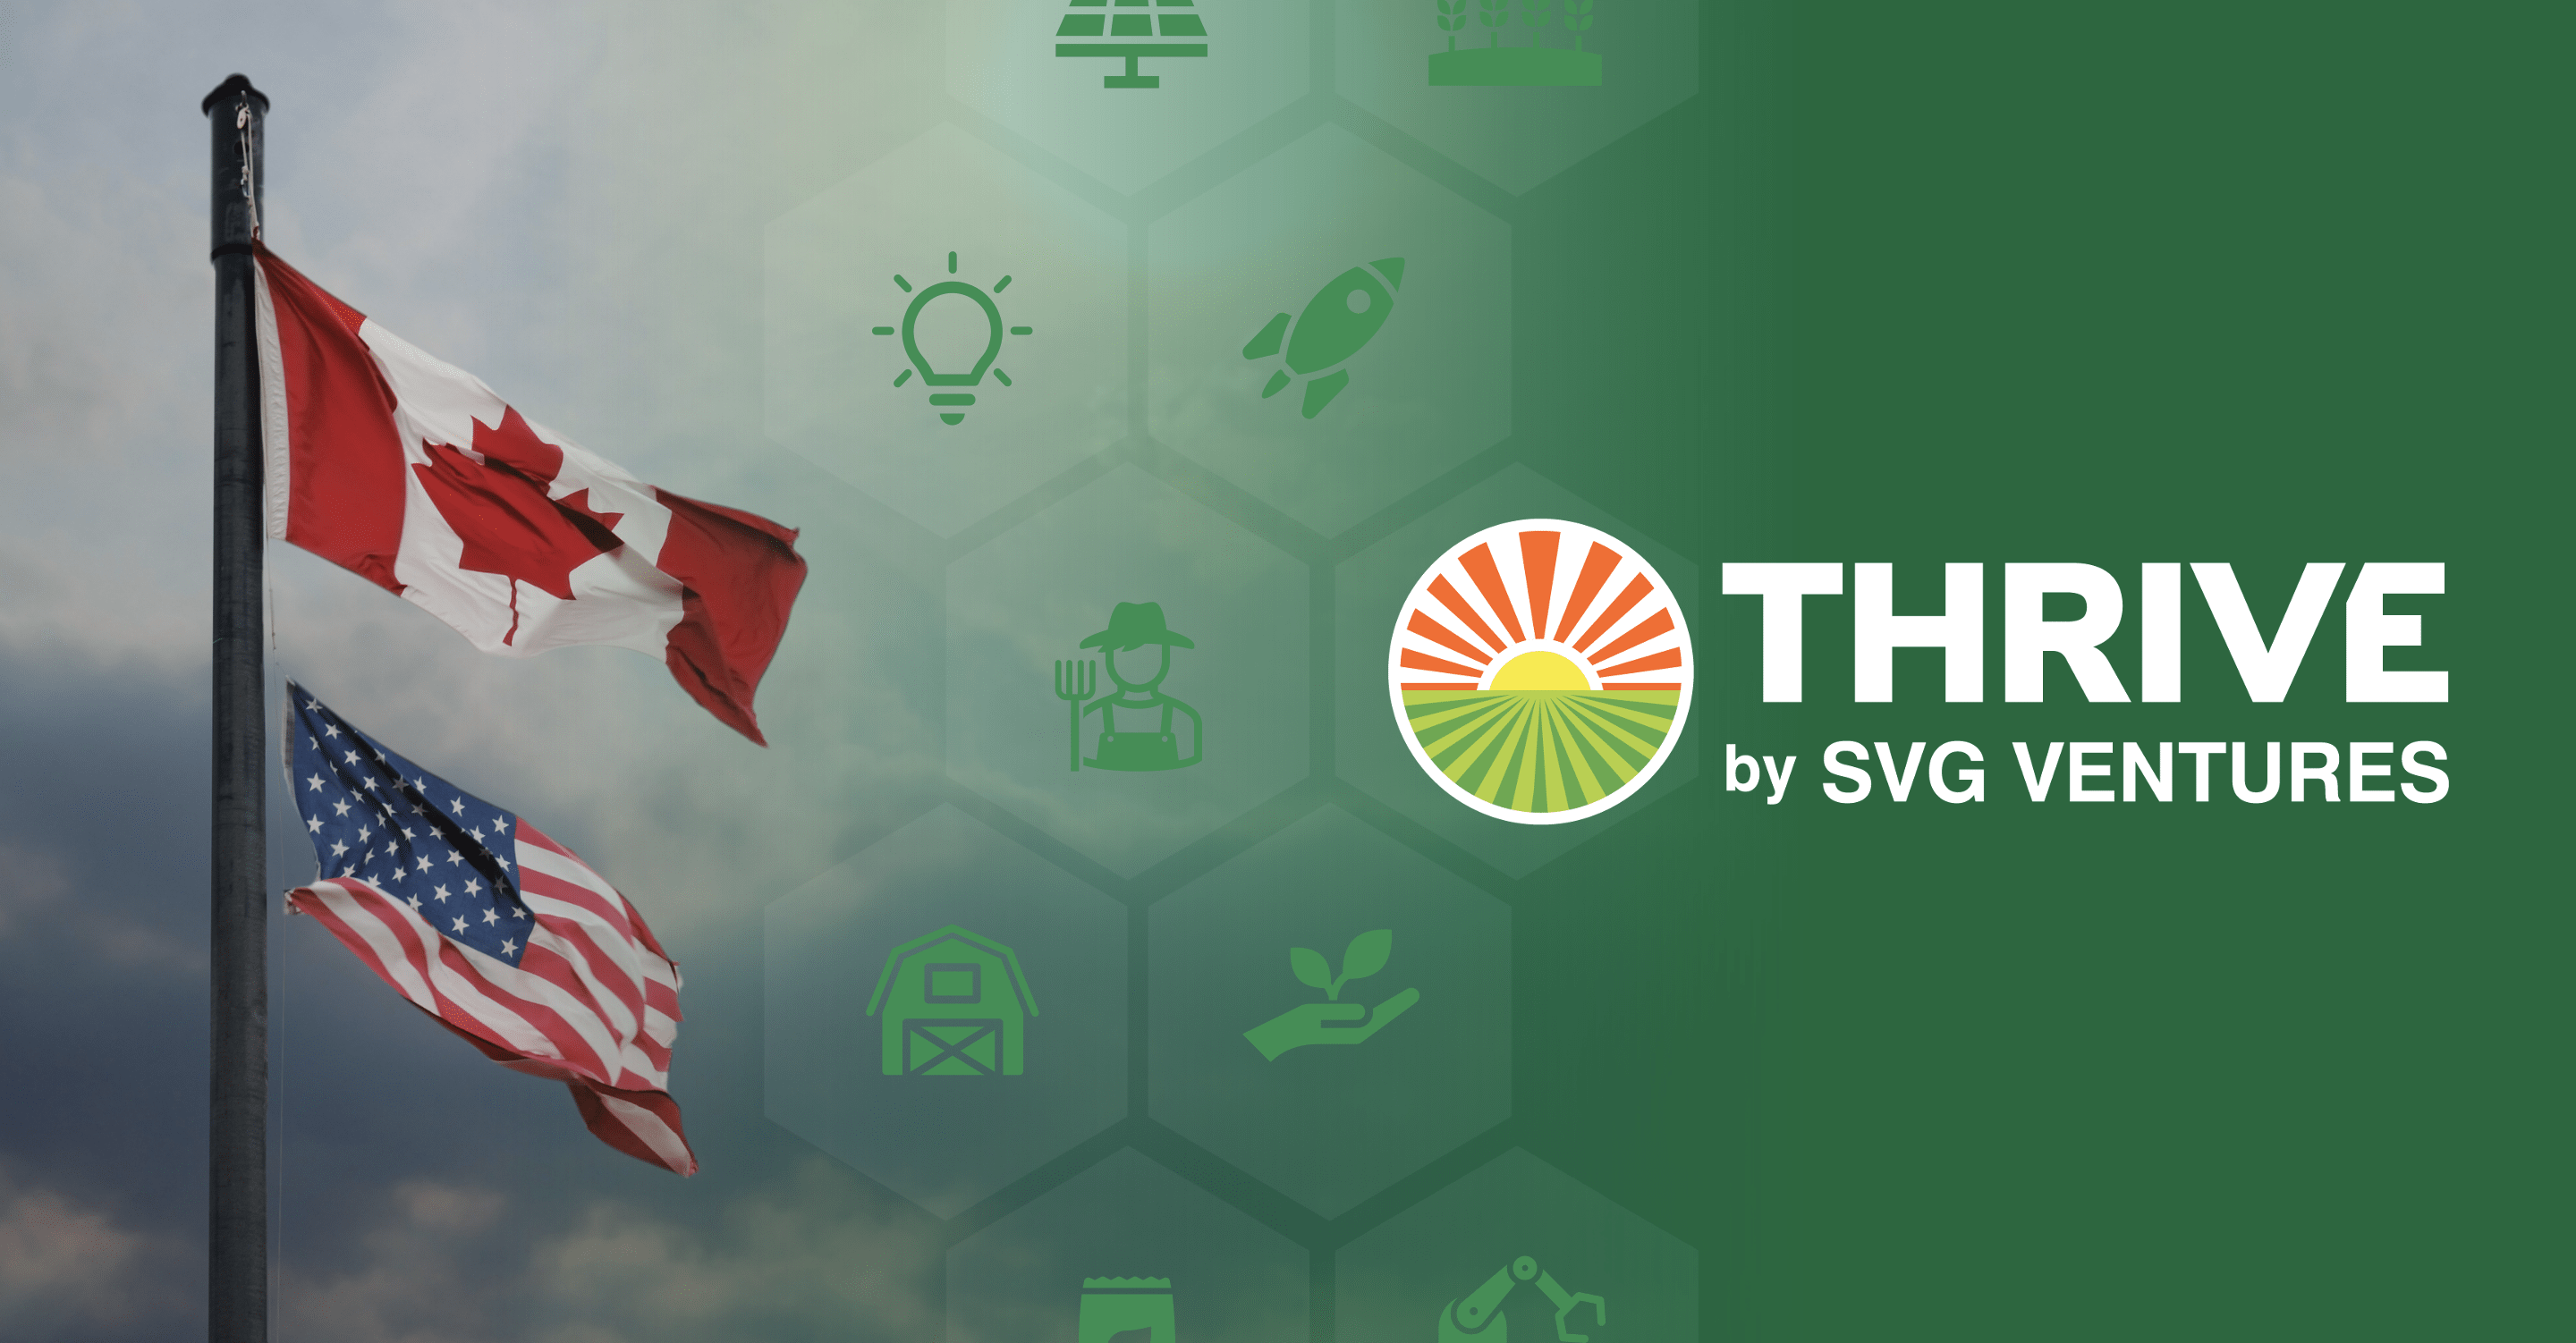 SVG Ventures | THRIVE  launches in Canada and establishes their innovation and investment platform with headquarters in Calgary, Alberta